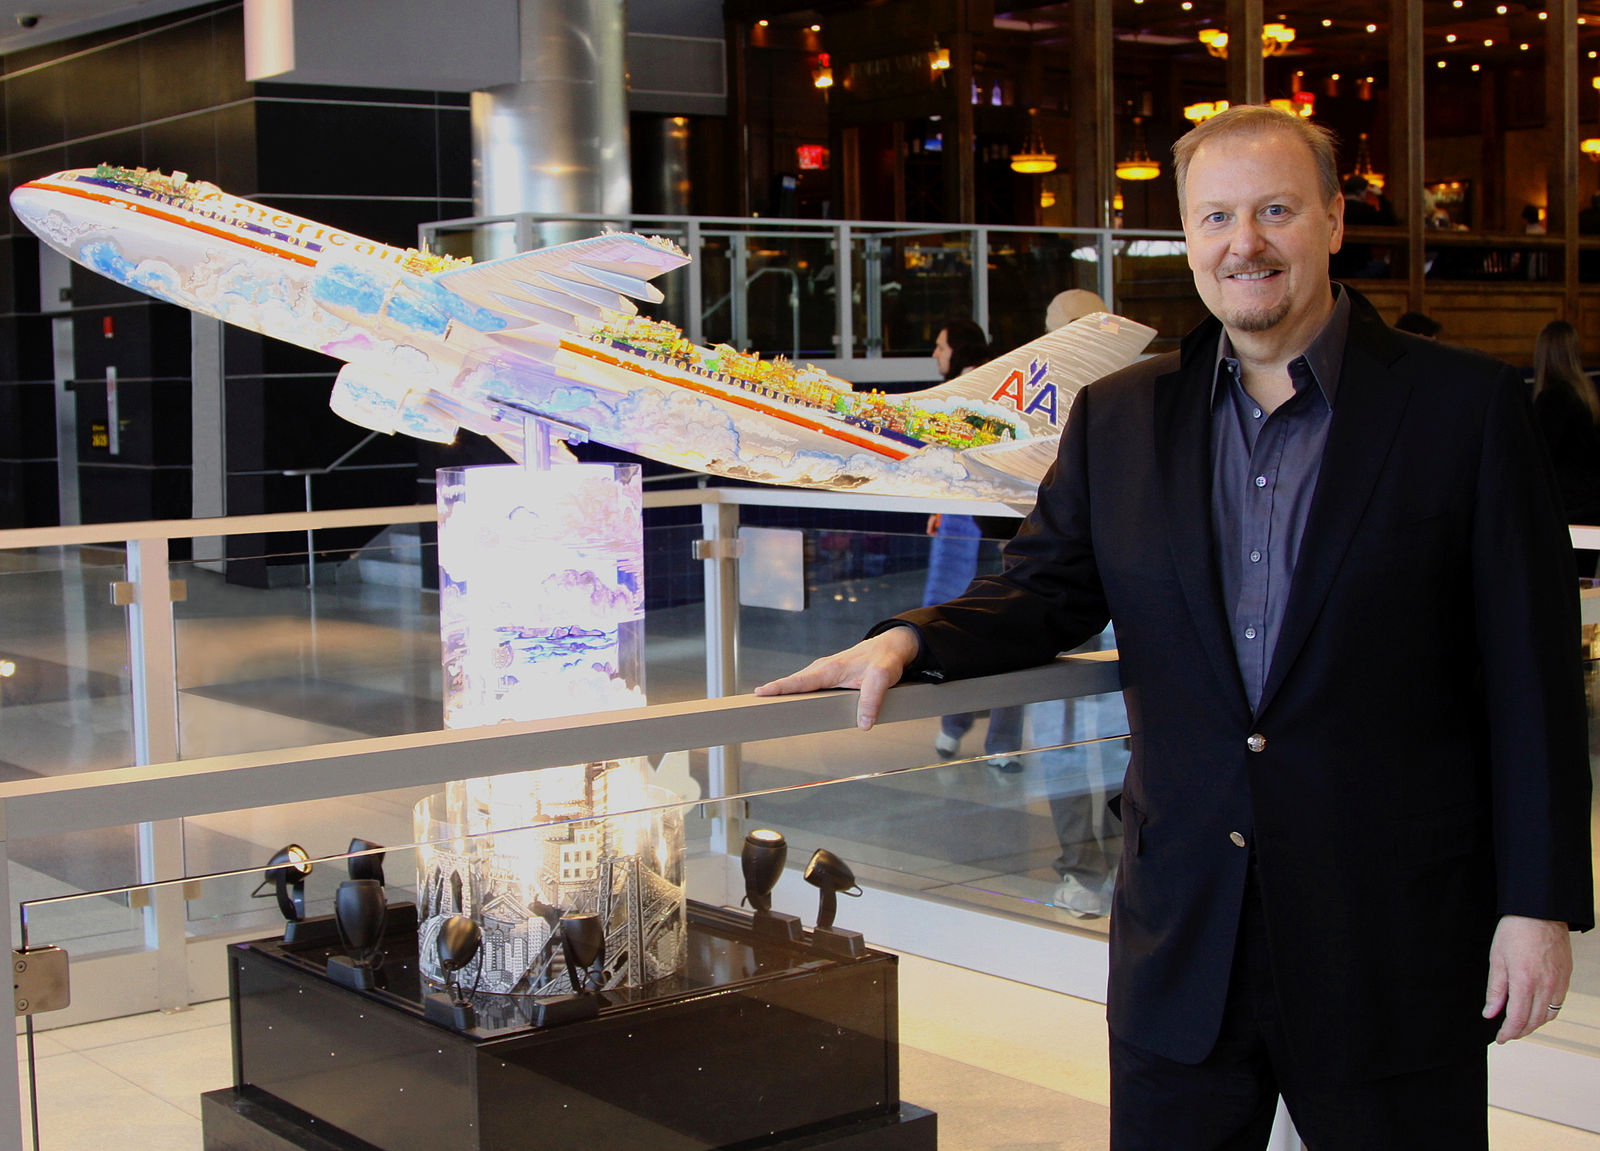 Fazzino standing next to his airplane piece at JFK Airport.